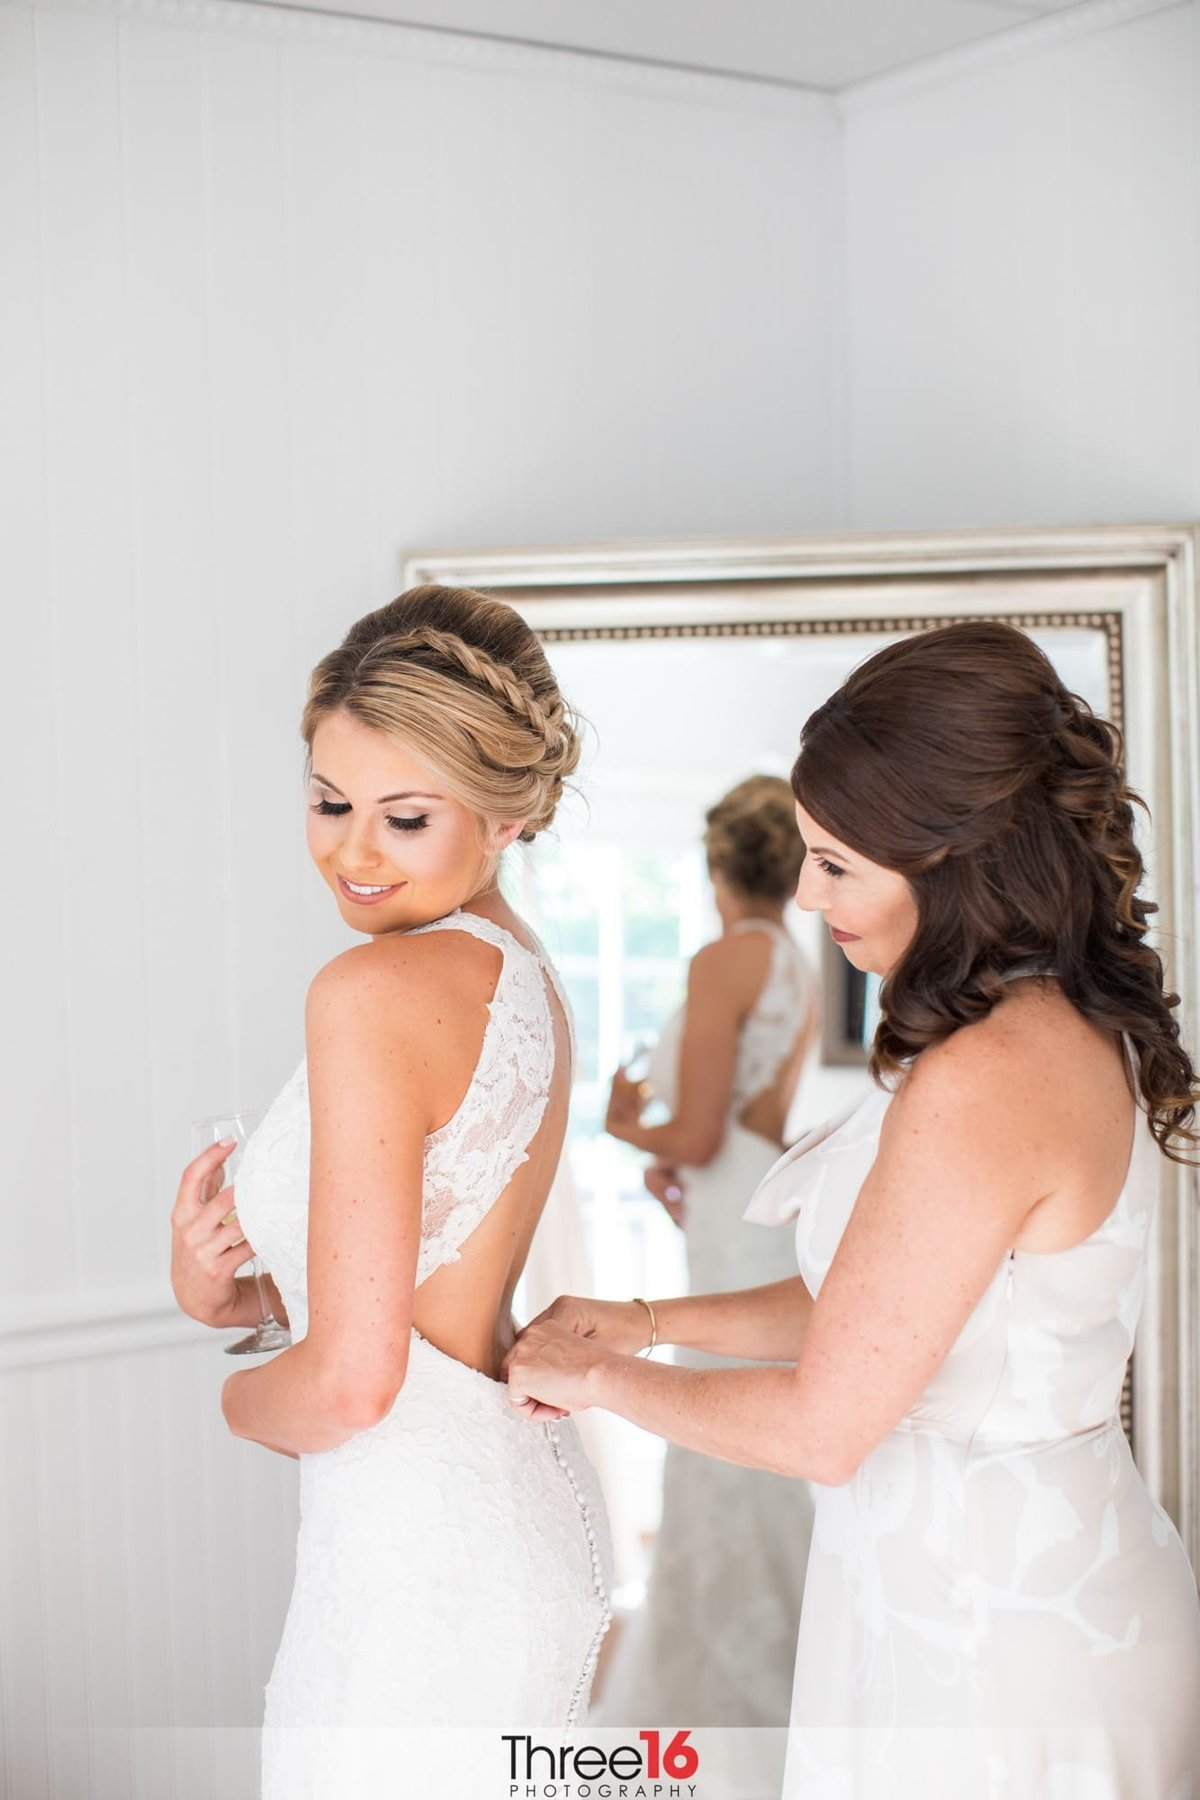 Bride having her dressed buttoned up